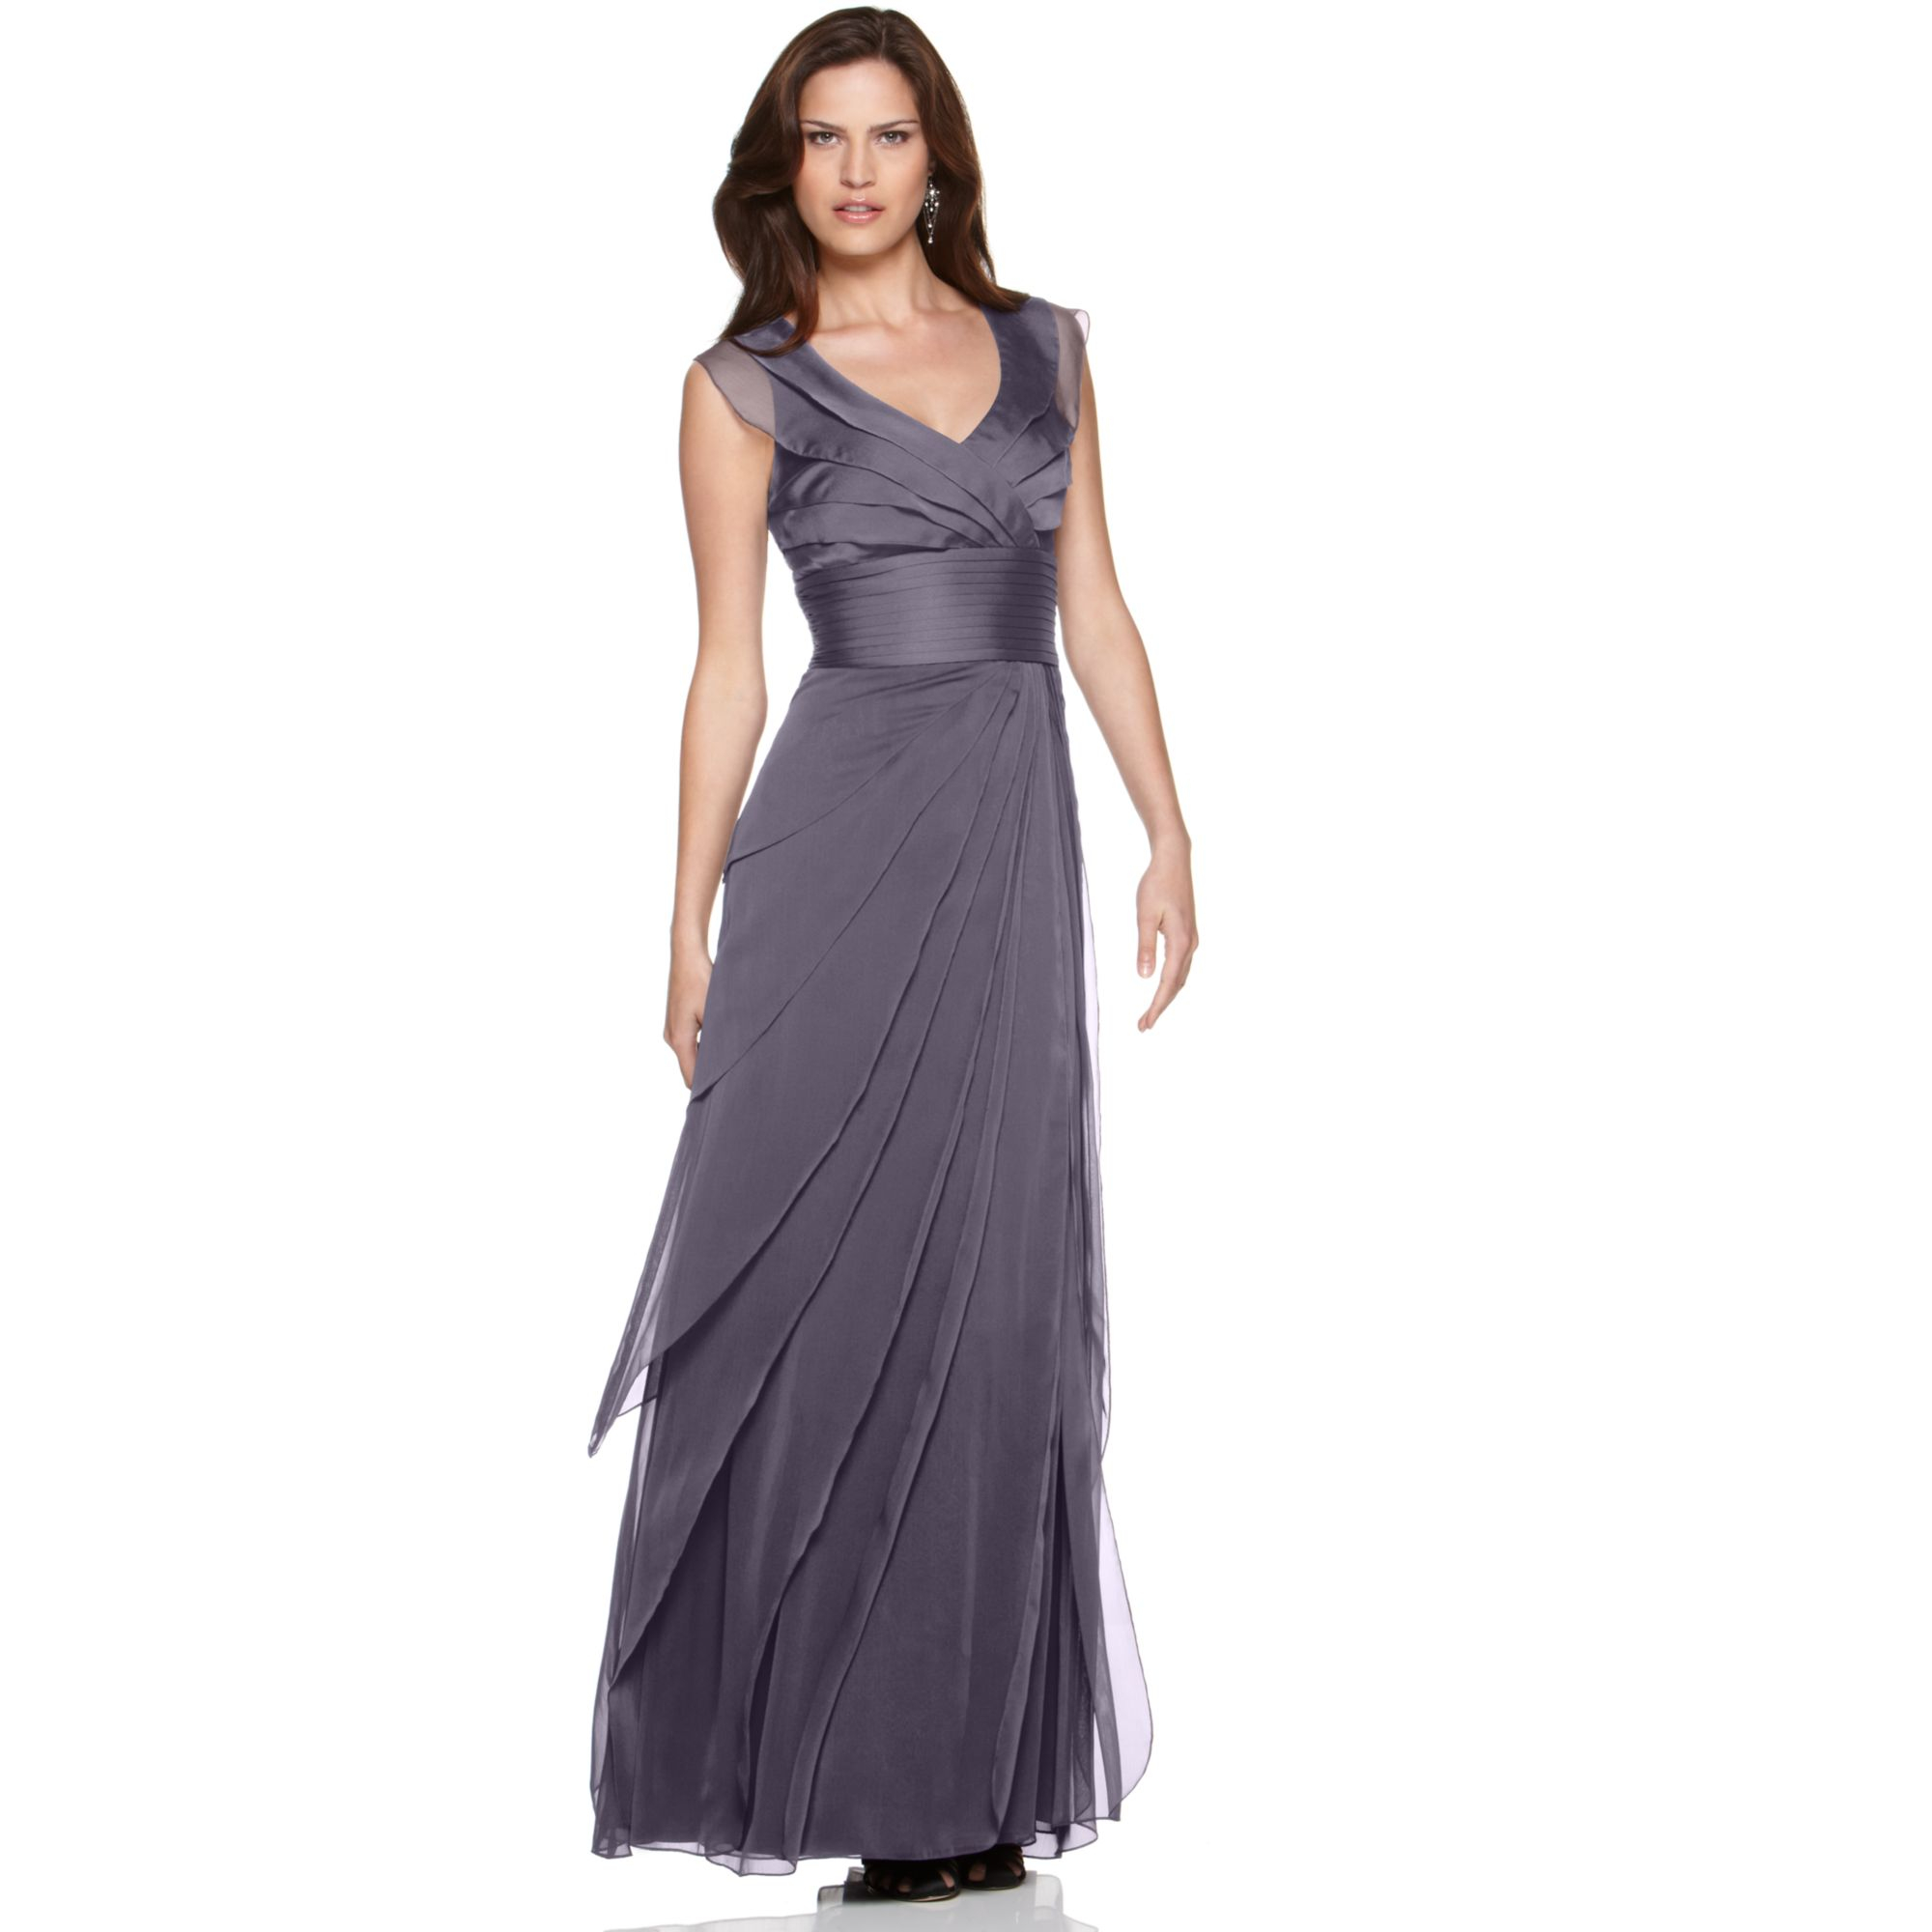 Grey Dress: Adrianna Papell Tiered Evening Dress In Gray (grey)